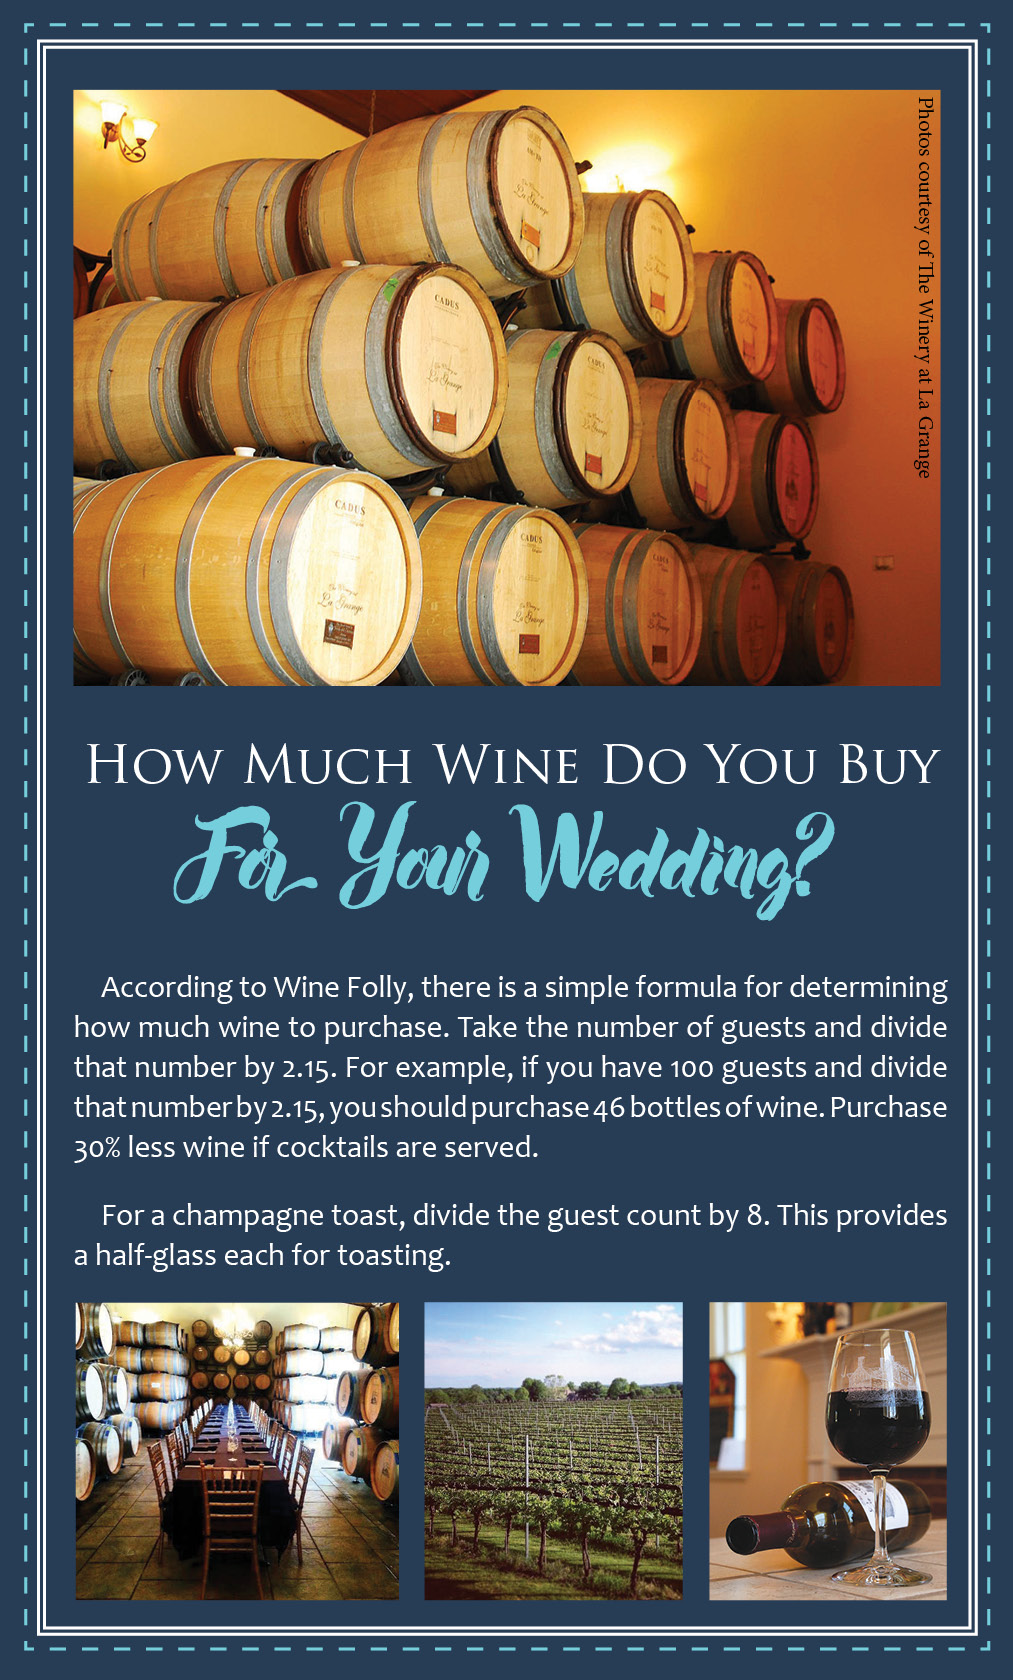 Red Or White? A Guide For Choosing Your Wedding Wines